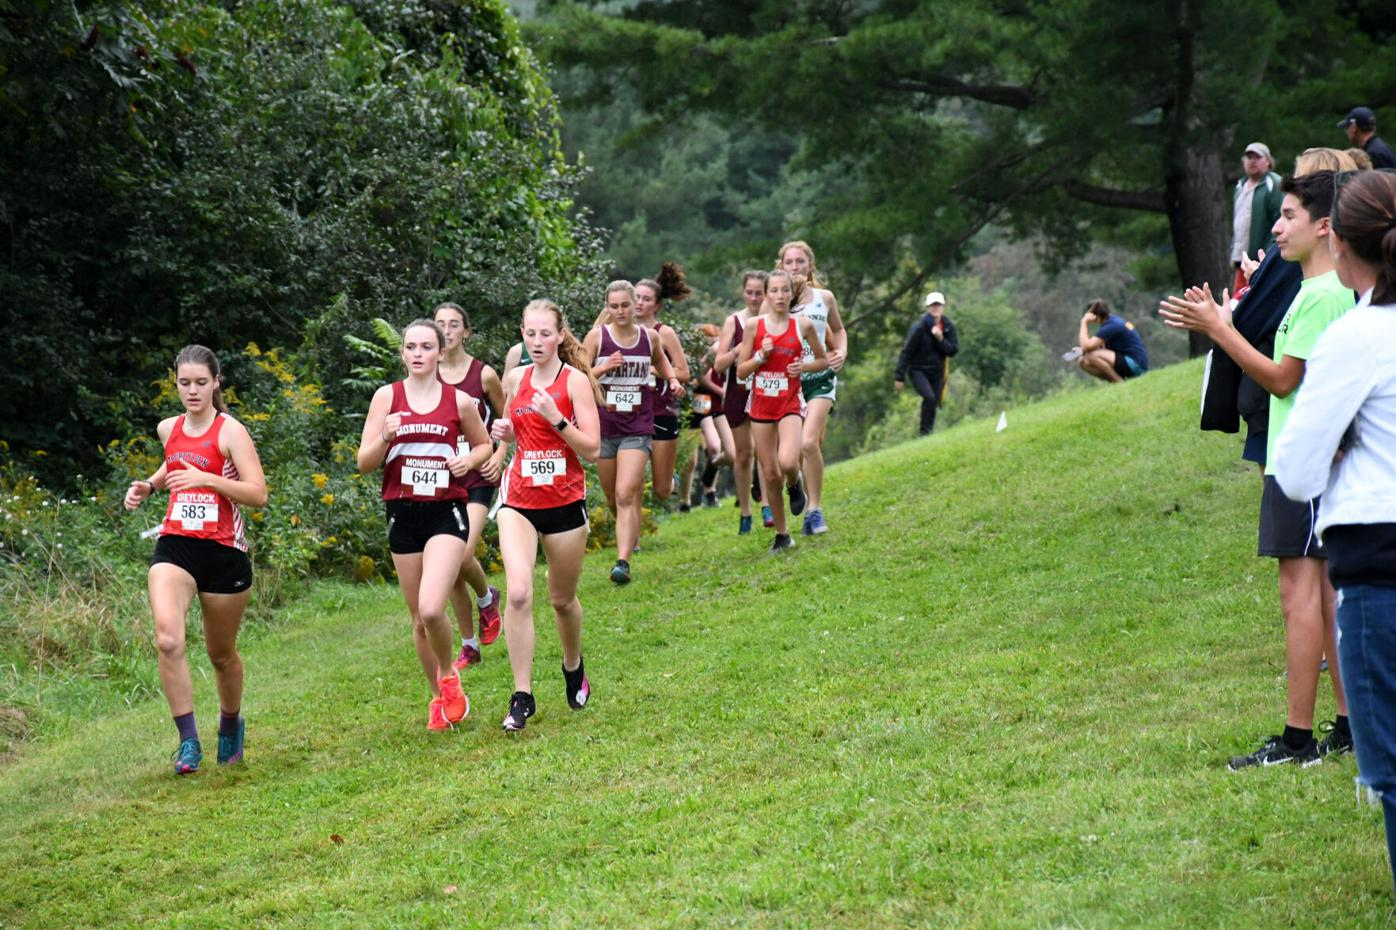 Girls run the course as fans cheer on